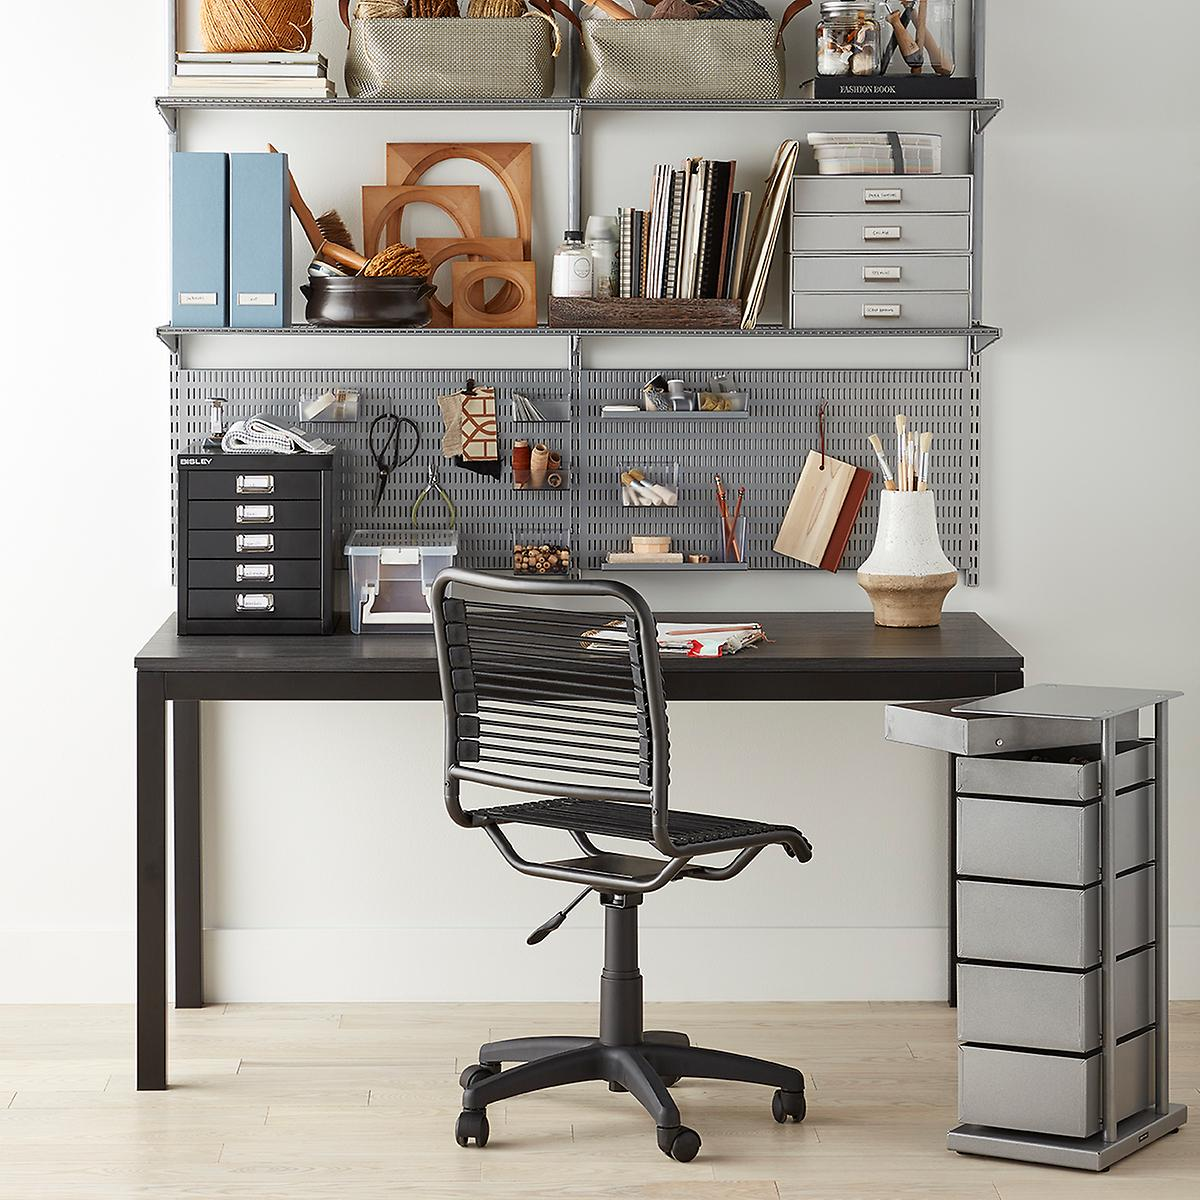 Platinum Elfa Home Office Shelving